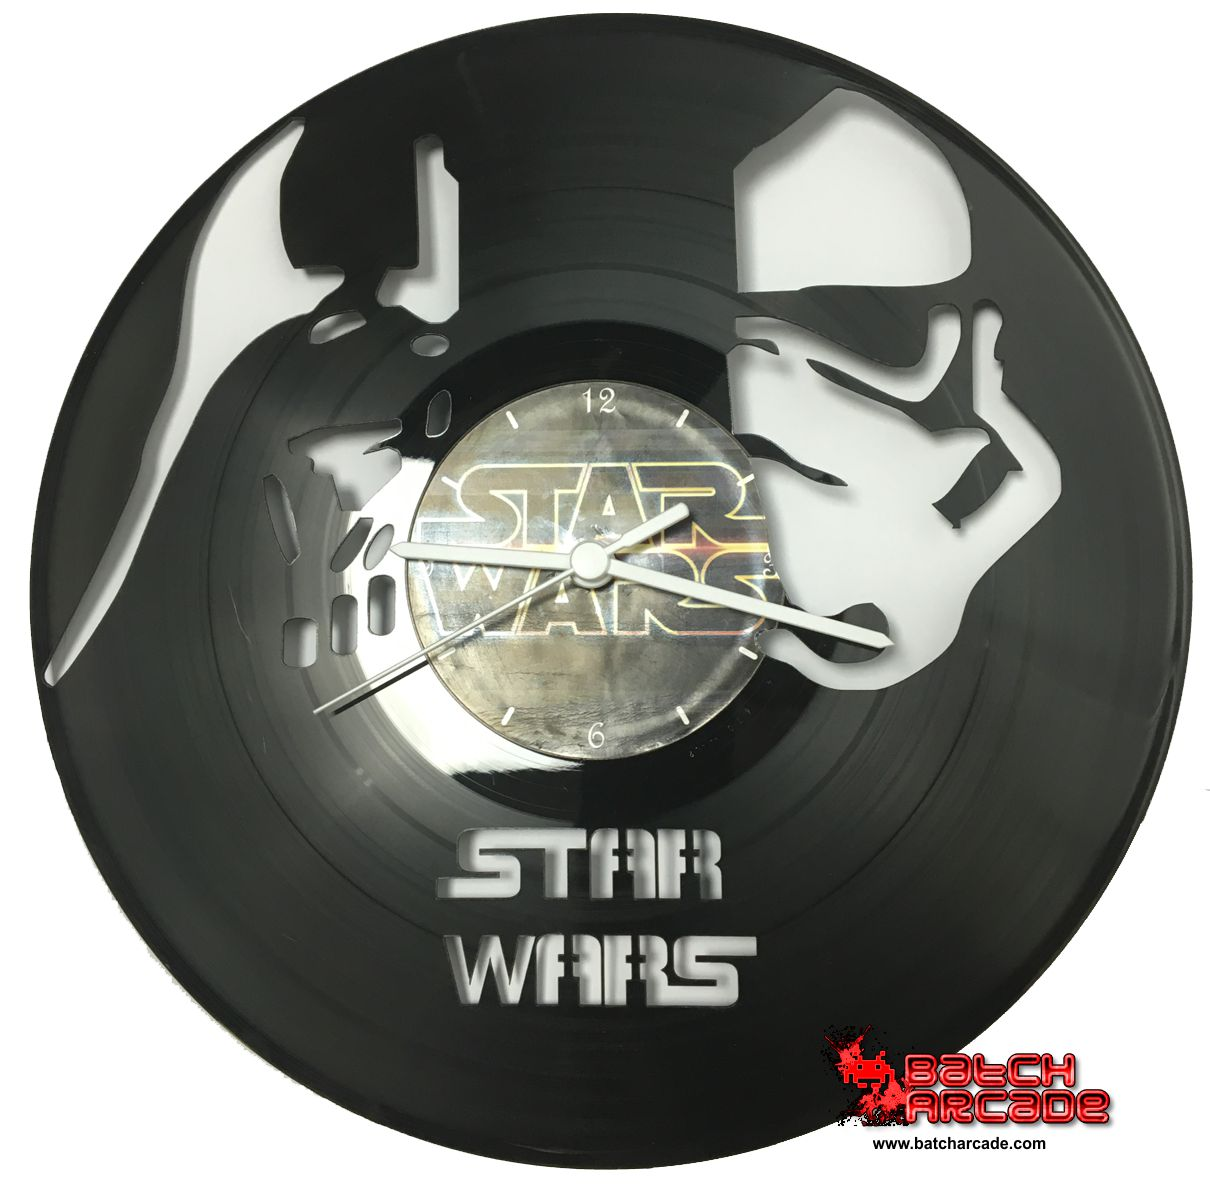 Vinilos Decorativos Star Wars Reloj Vinilo Decorativo Star Wars